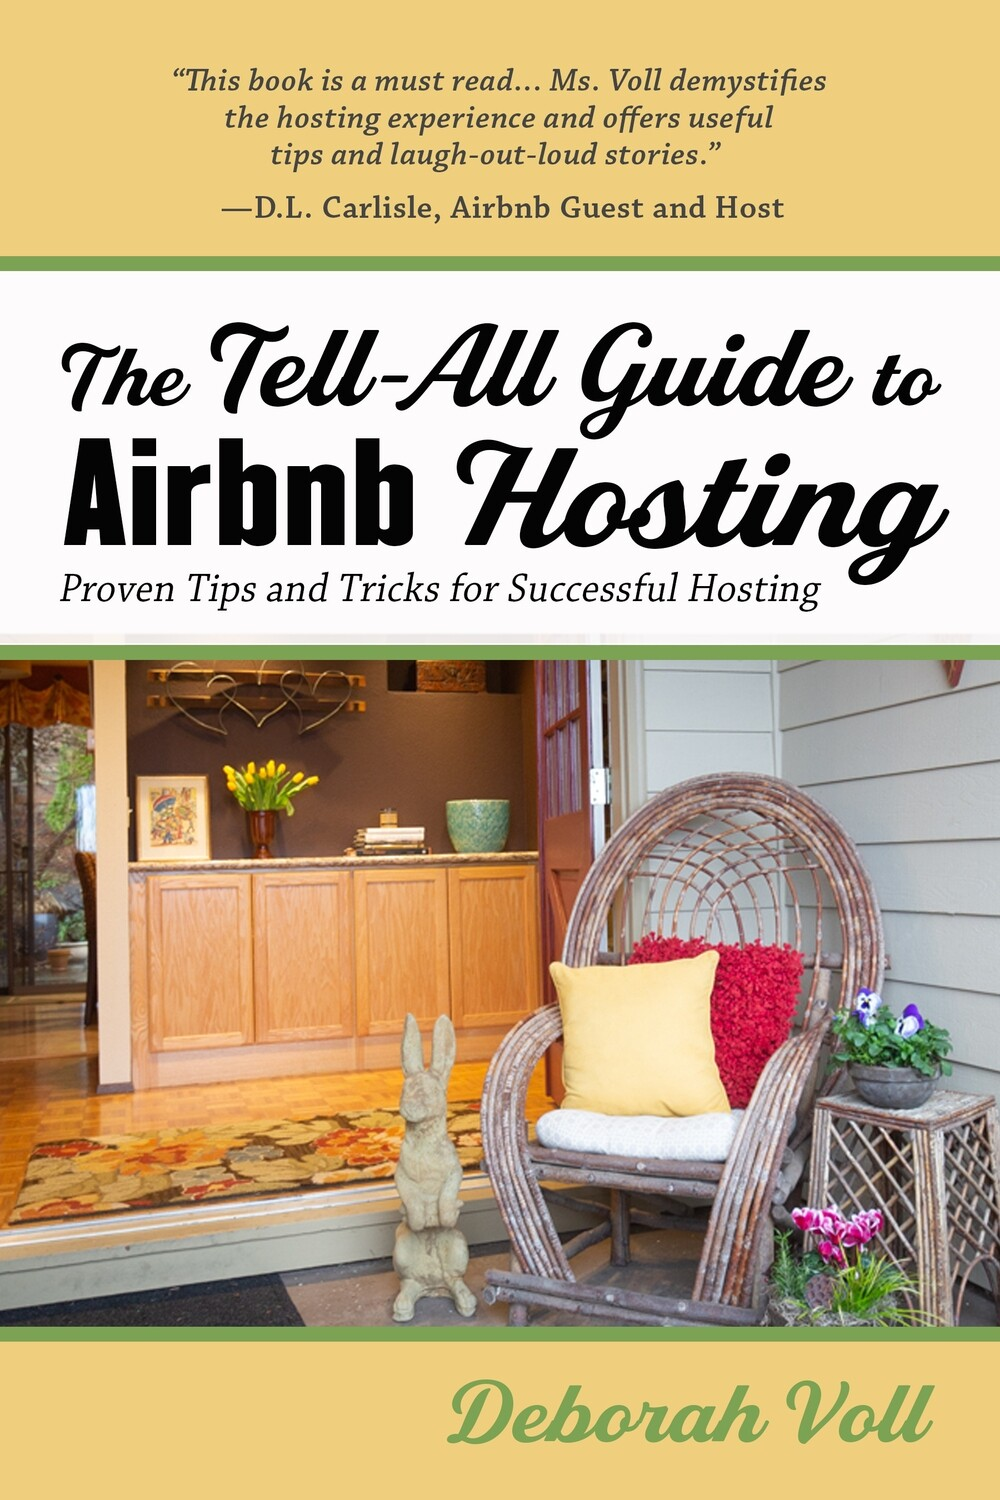 PRE-ORDER: ​The Tell-All Guide to Airbnb Hosting by Deborah Voll